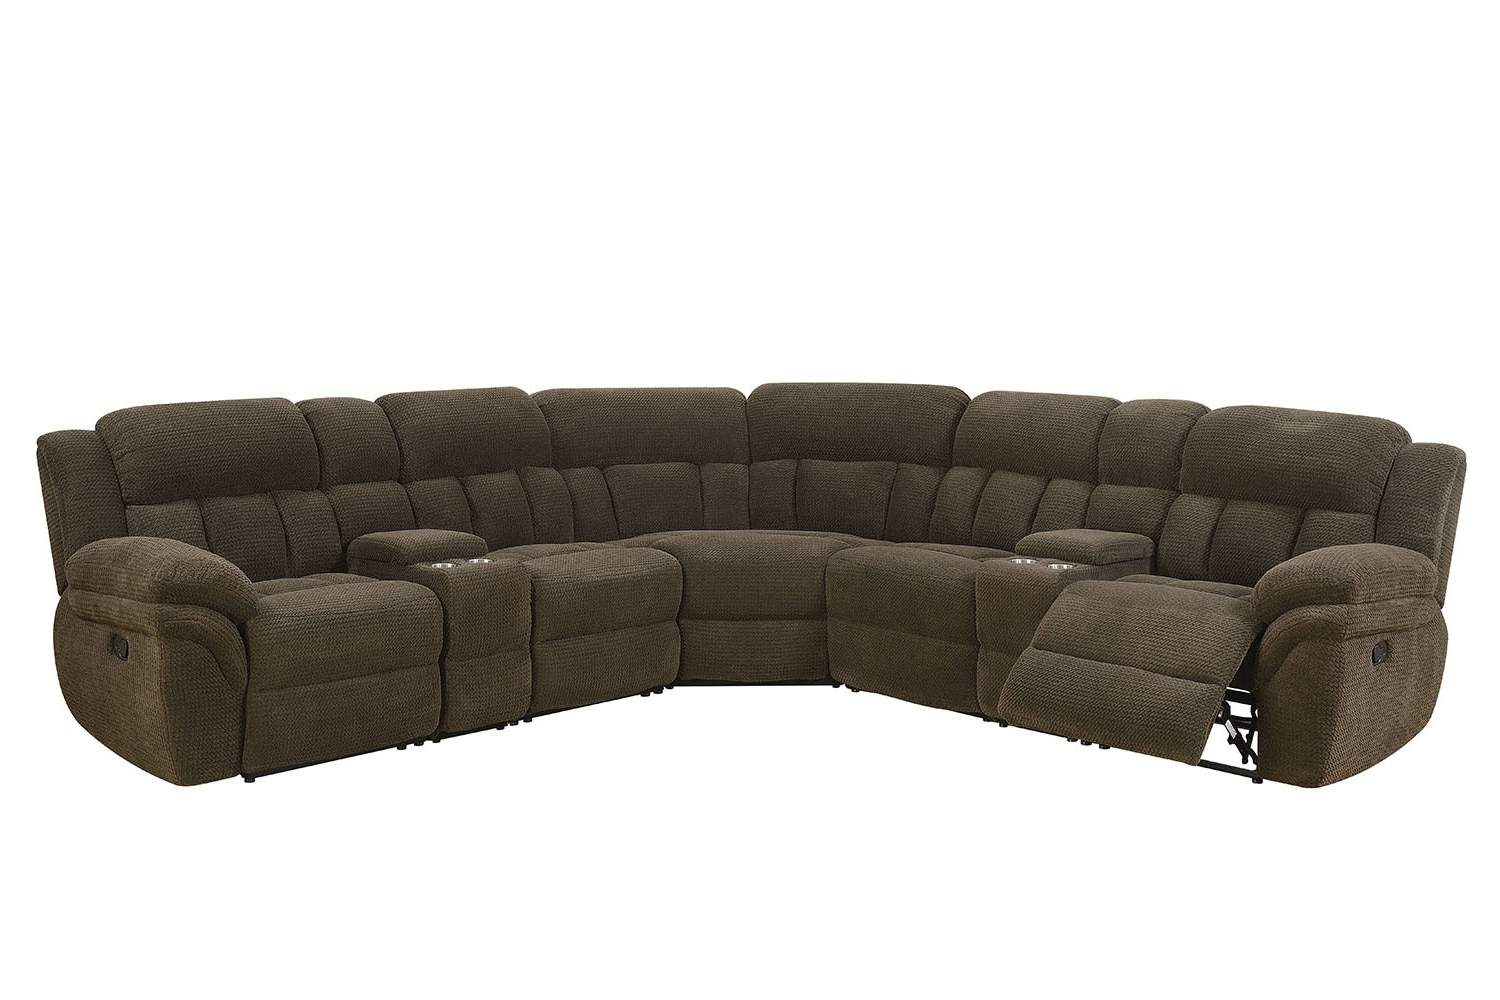 Famous Aspen 2 Piece Sleeper Sectionals With Raf Chaise With Sectional Sofas (View 12 of 20)